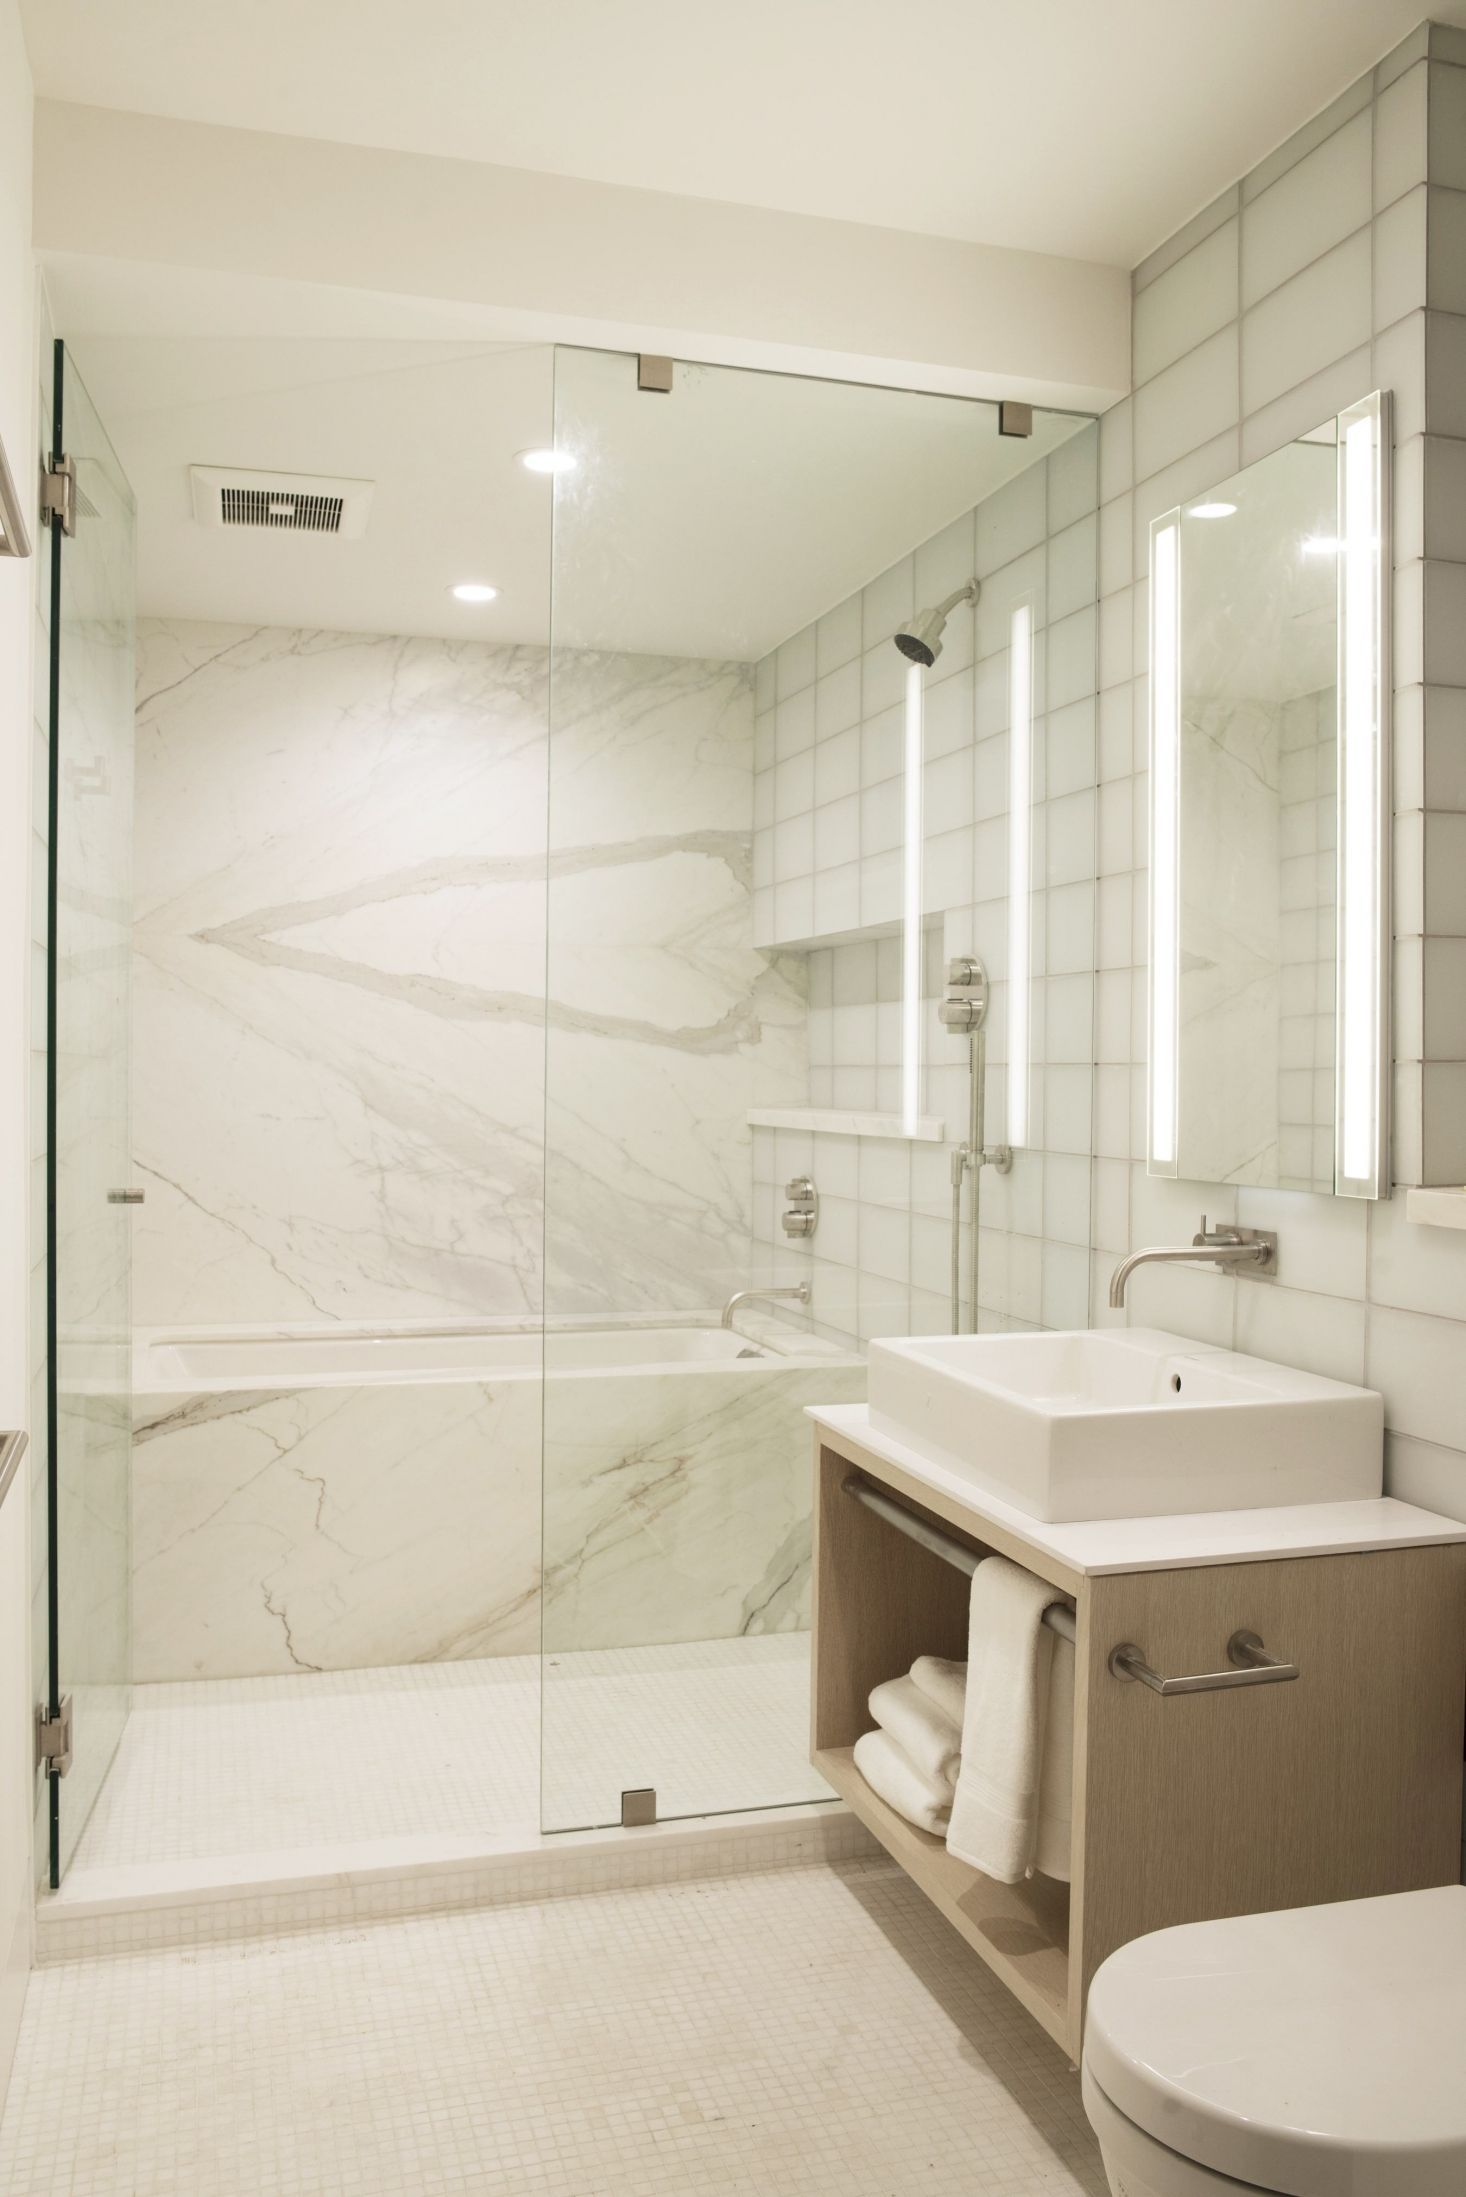 ground floor bathroom has calacatta   oro marble bathtub installed in also